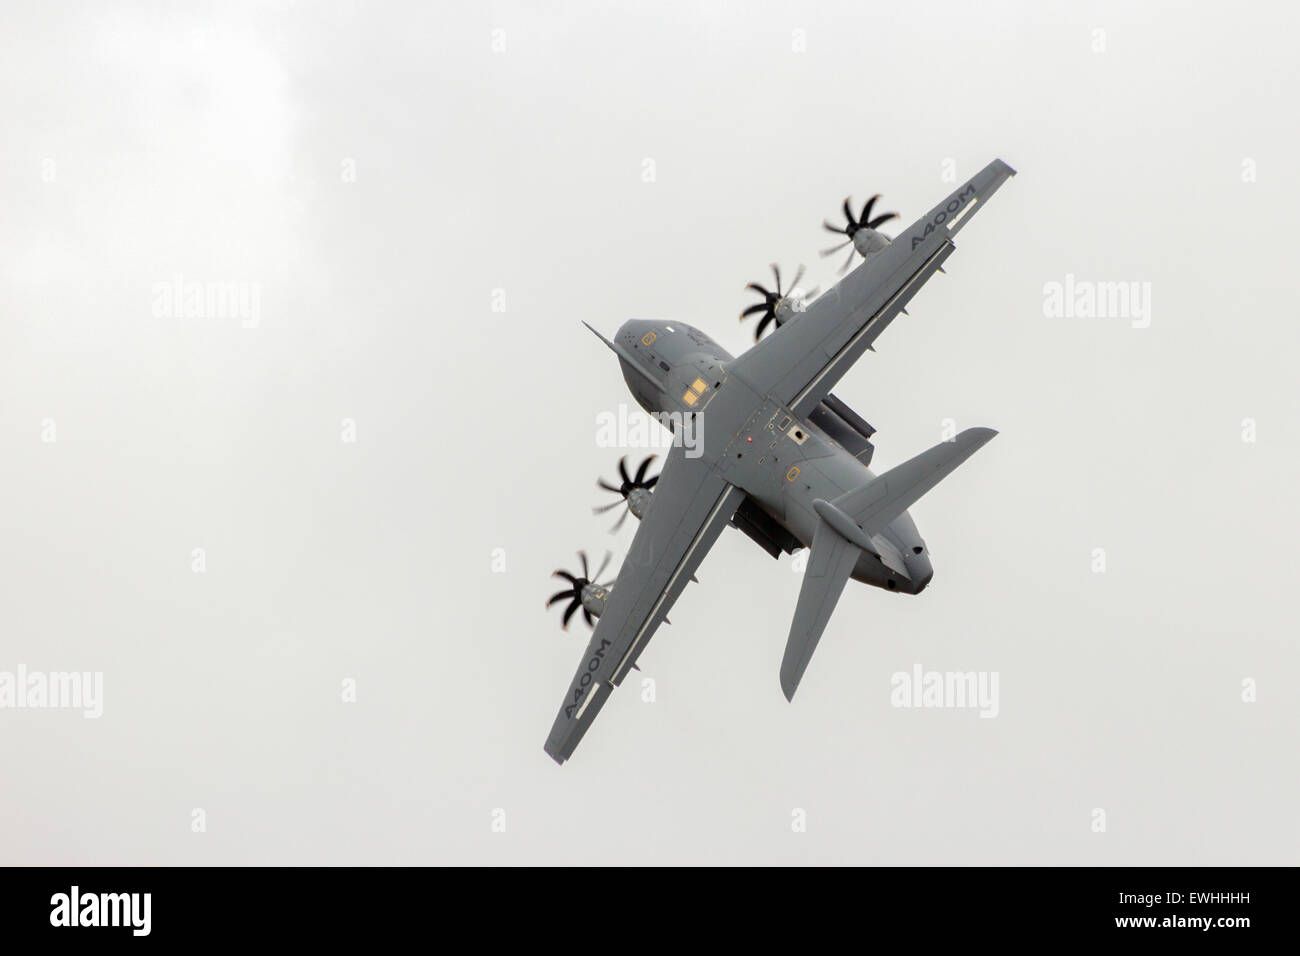 New Airbus A400M military transport plane in a steep take-off. The first A400M was delivered to the French - Stock Image